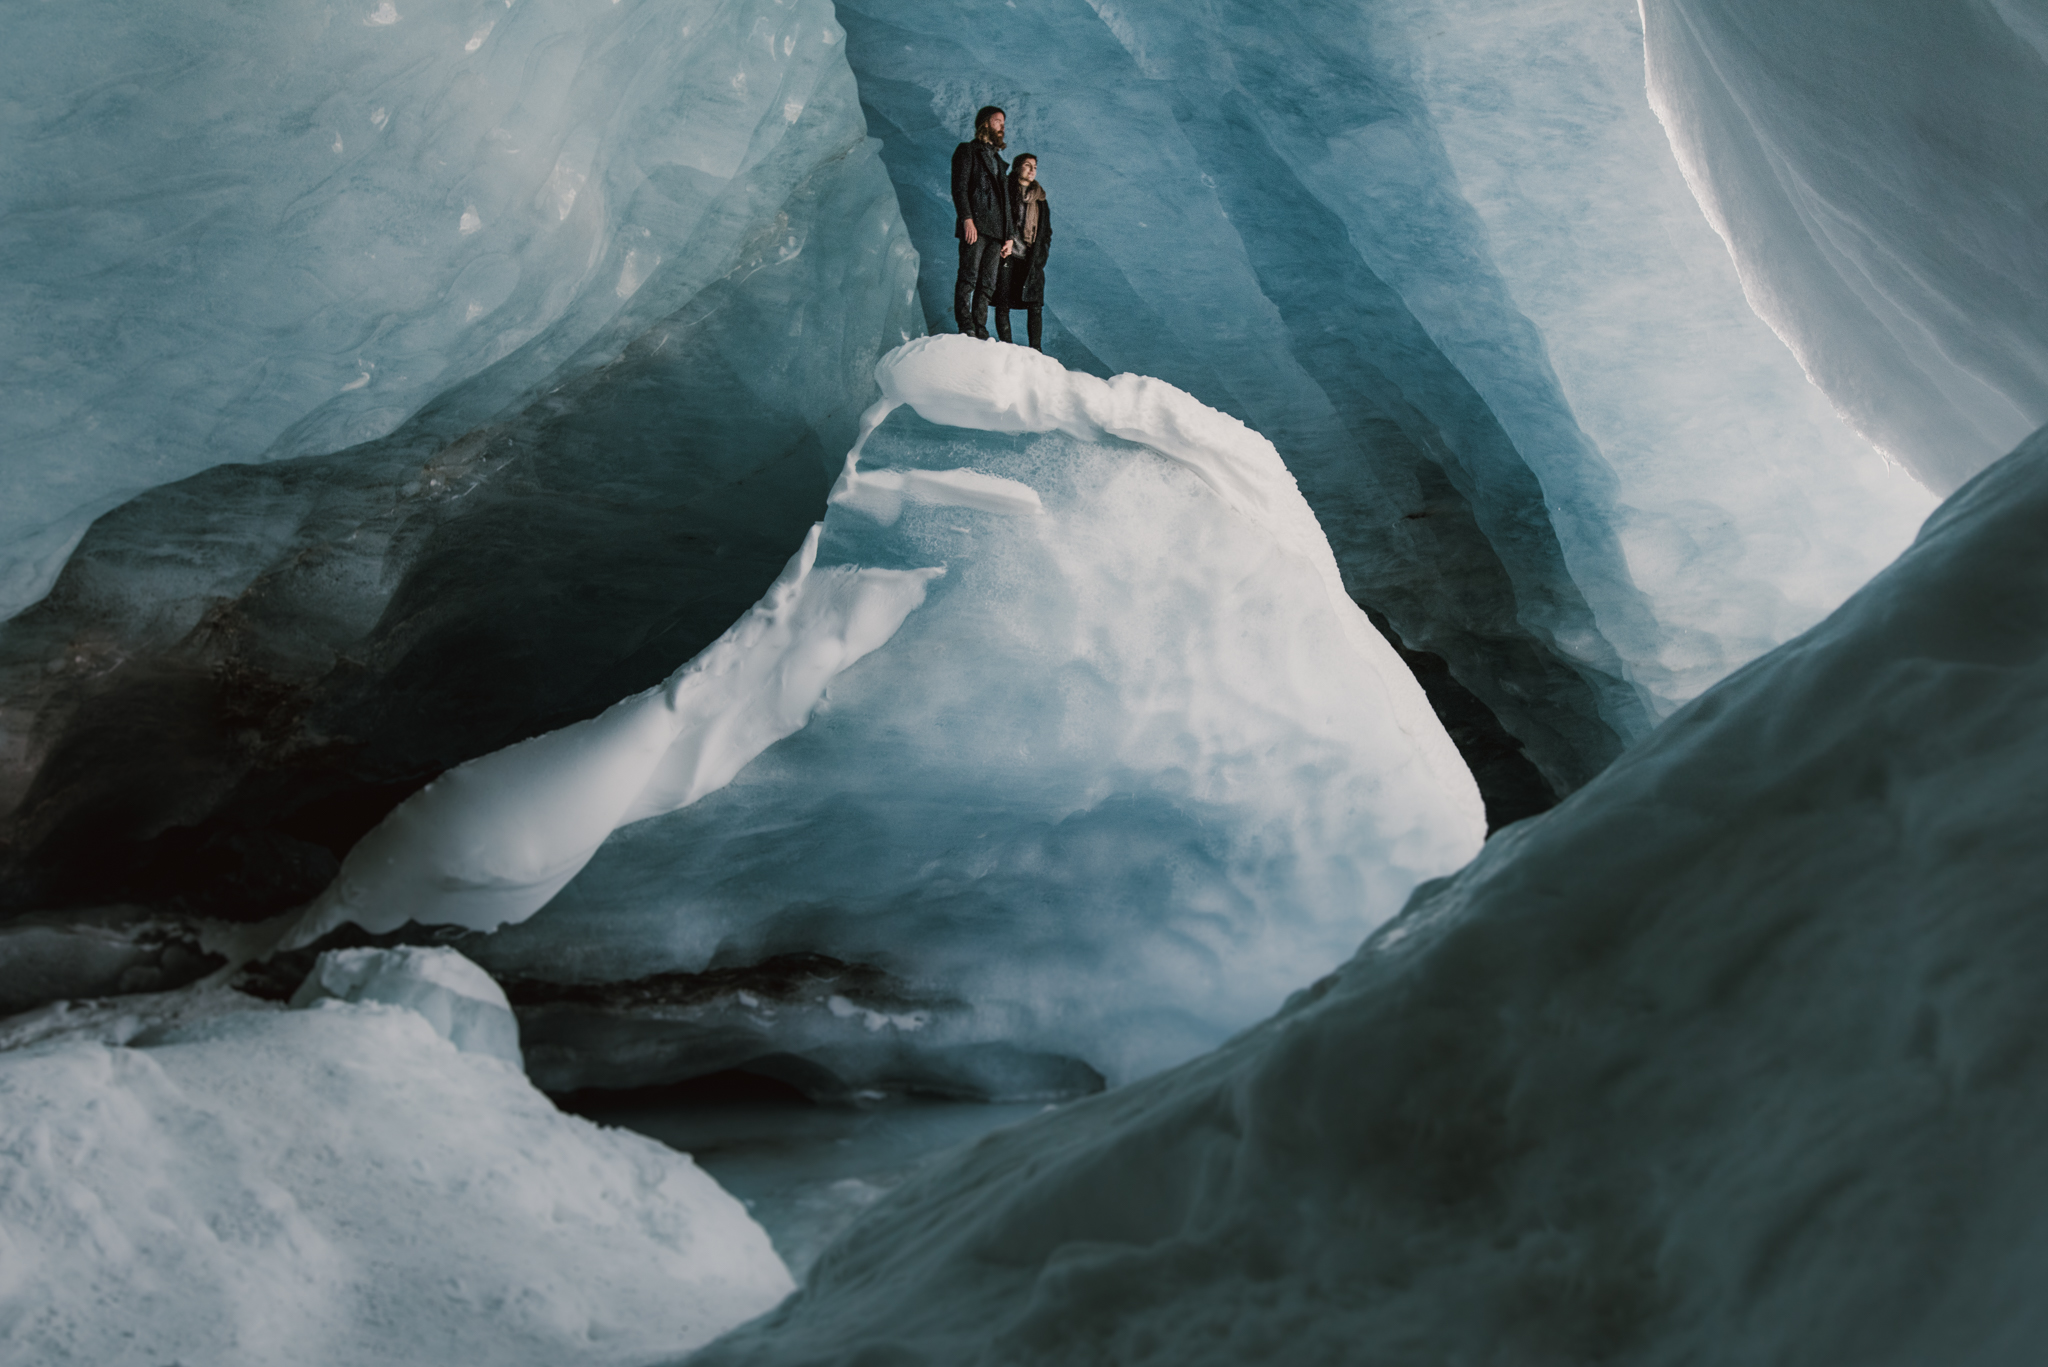 ©The-Ryans-Photo---Athabasca-Glacier,-Ice-Cave-038.jpg